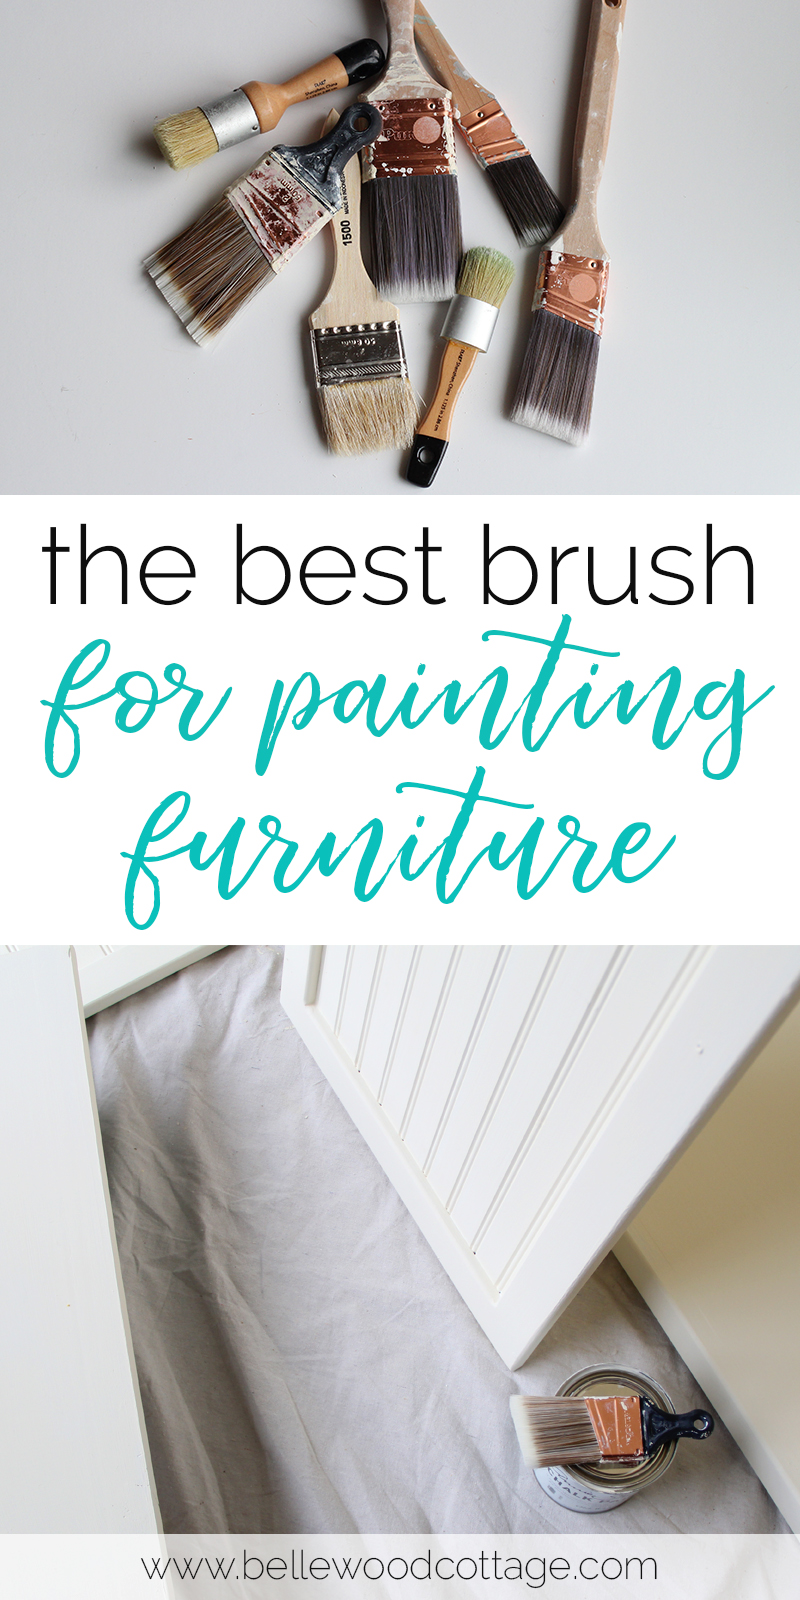 the best brush for painting furniture